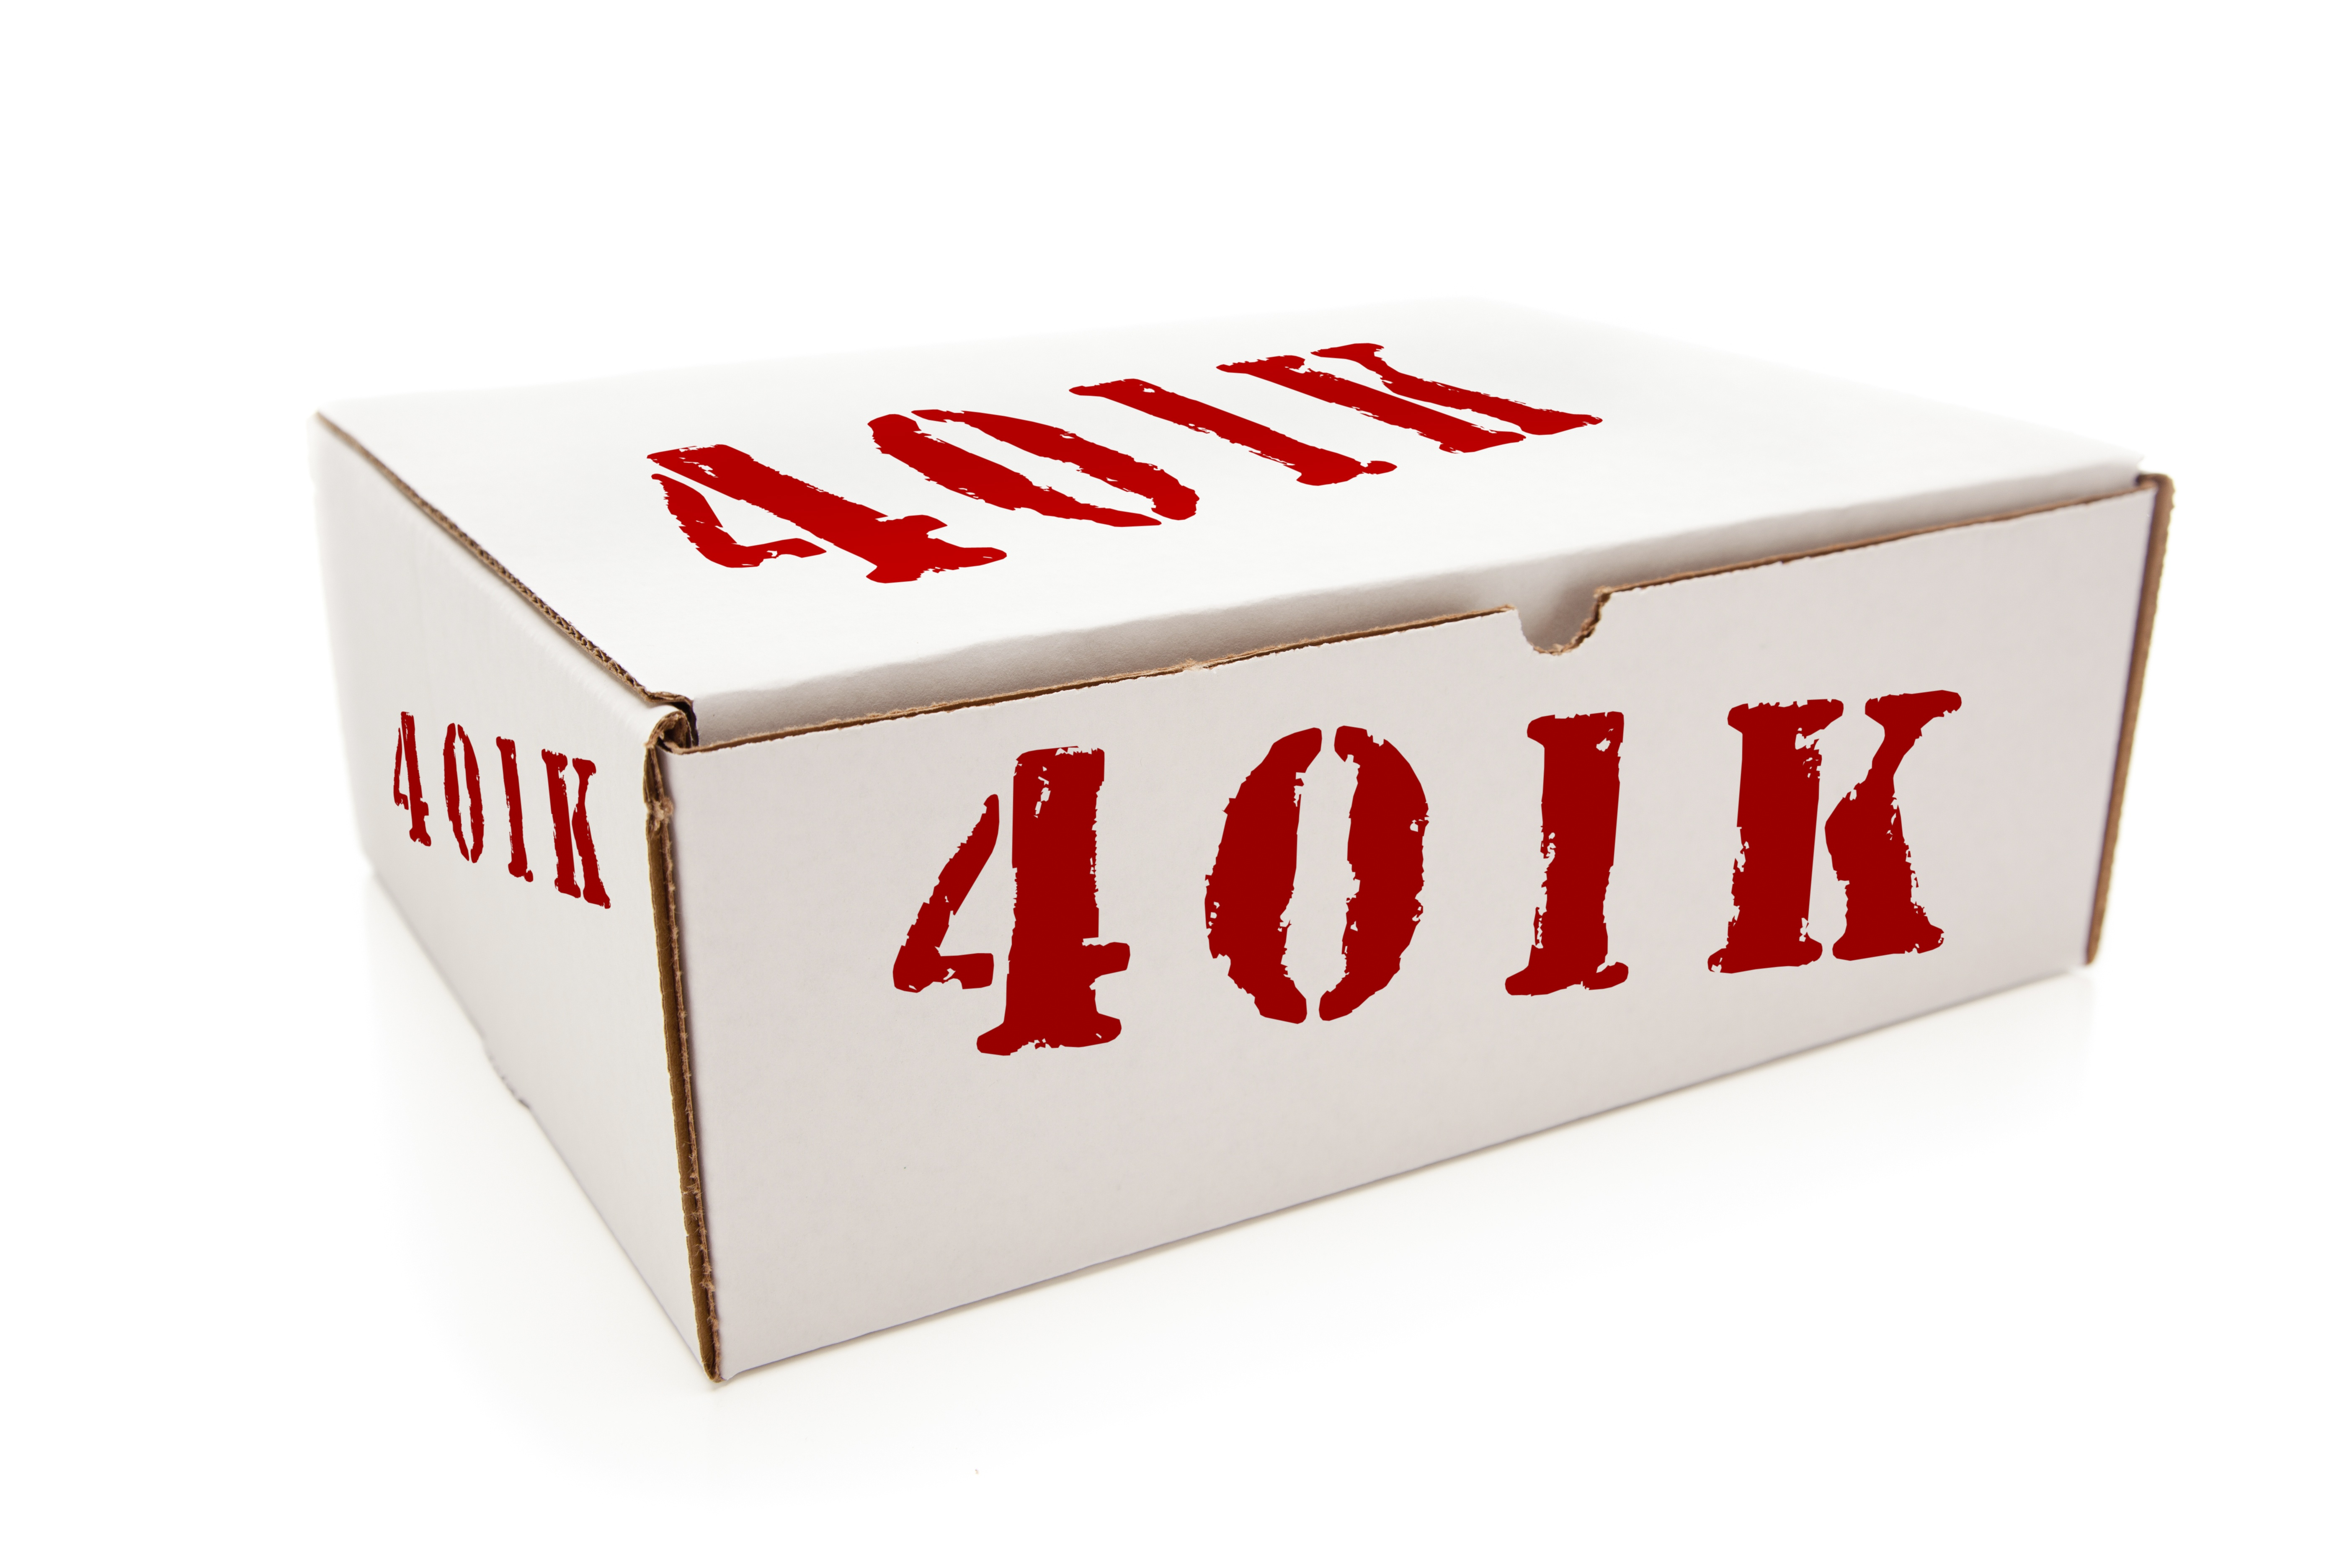 White box stamped 401(k)